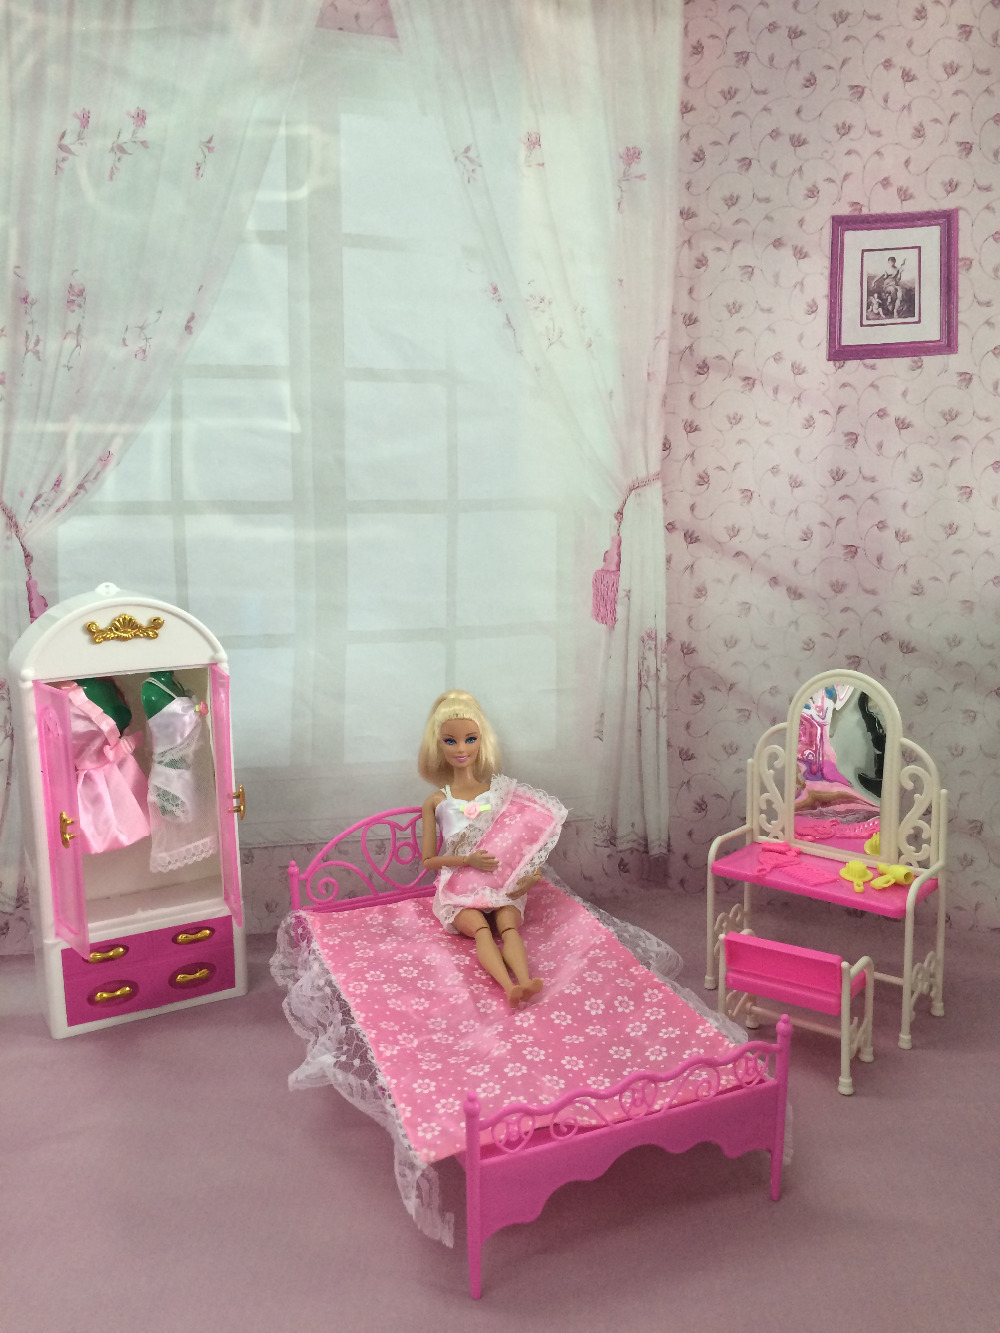 Free Shipping One Set Doll Furniture Wardrobe+ Dresser +Chair + Bed+Pillows Accessories For Barbie Doll Girl Play House Baby Toy bgr ultra thin flip pu leather case for ipad pro 9 7 smart cover auto sleep wake up protective shell